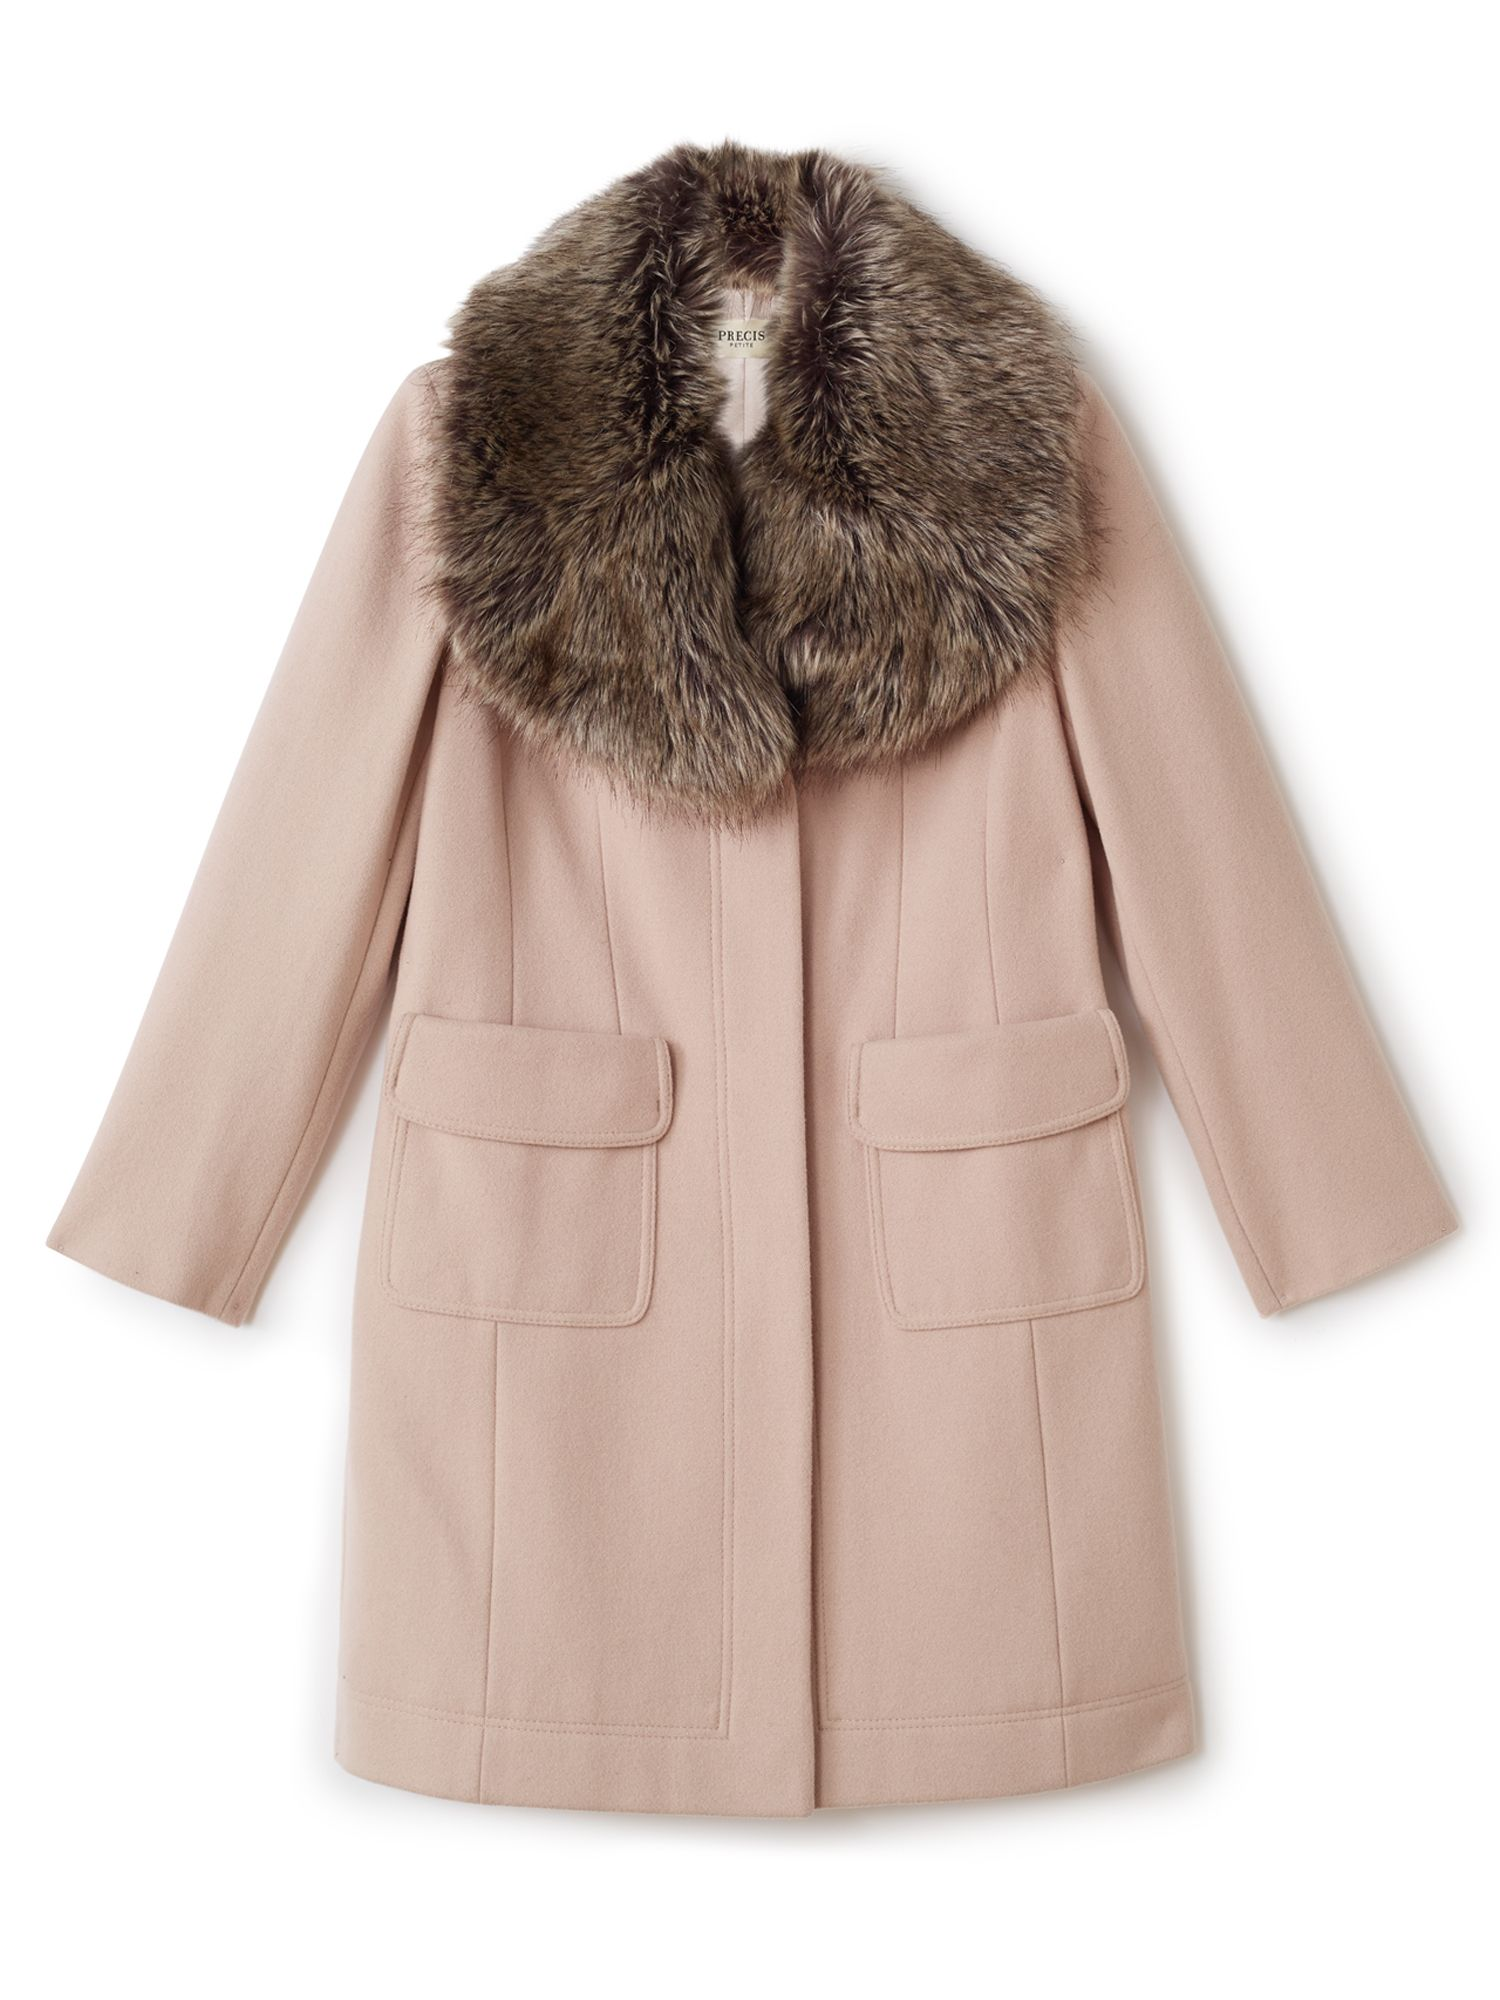 Precis Petite Stacy Fur Collar Long Coat, Neutral